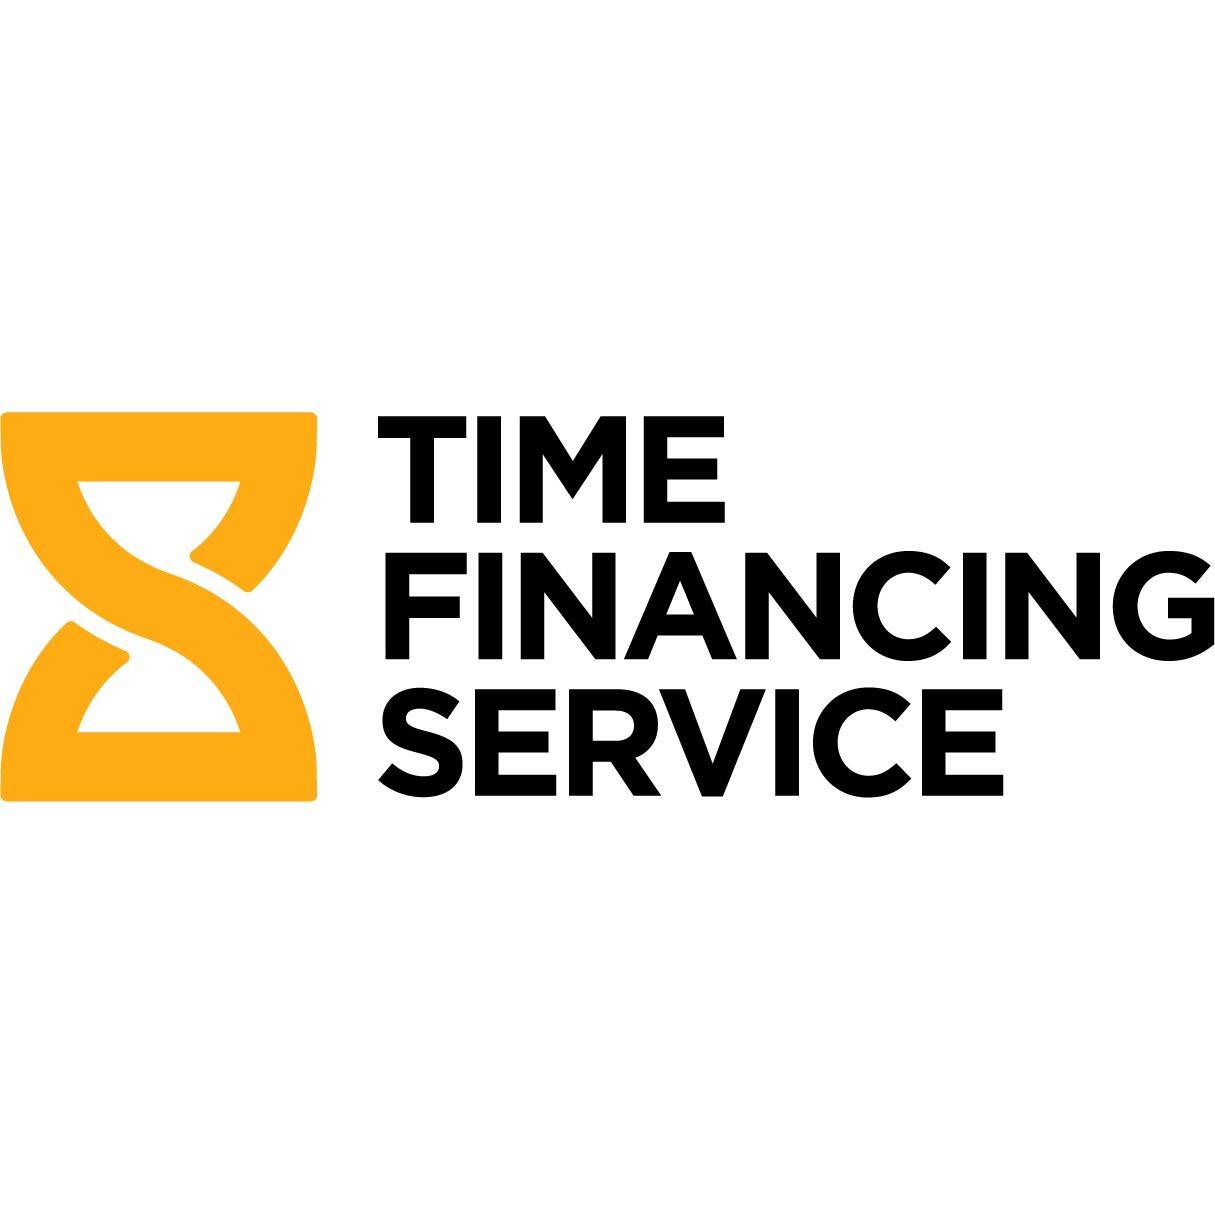 Time Financing Service - Winston-Salem, NC - Attorneys